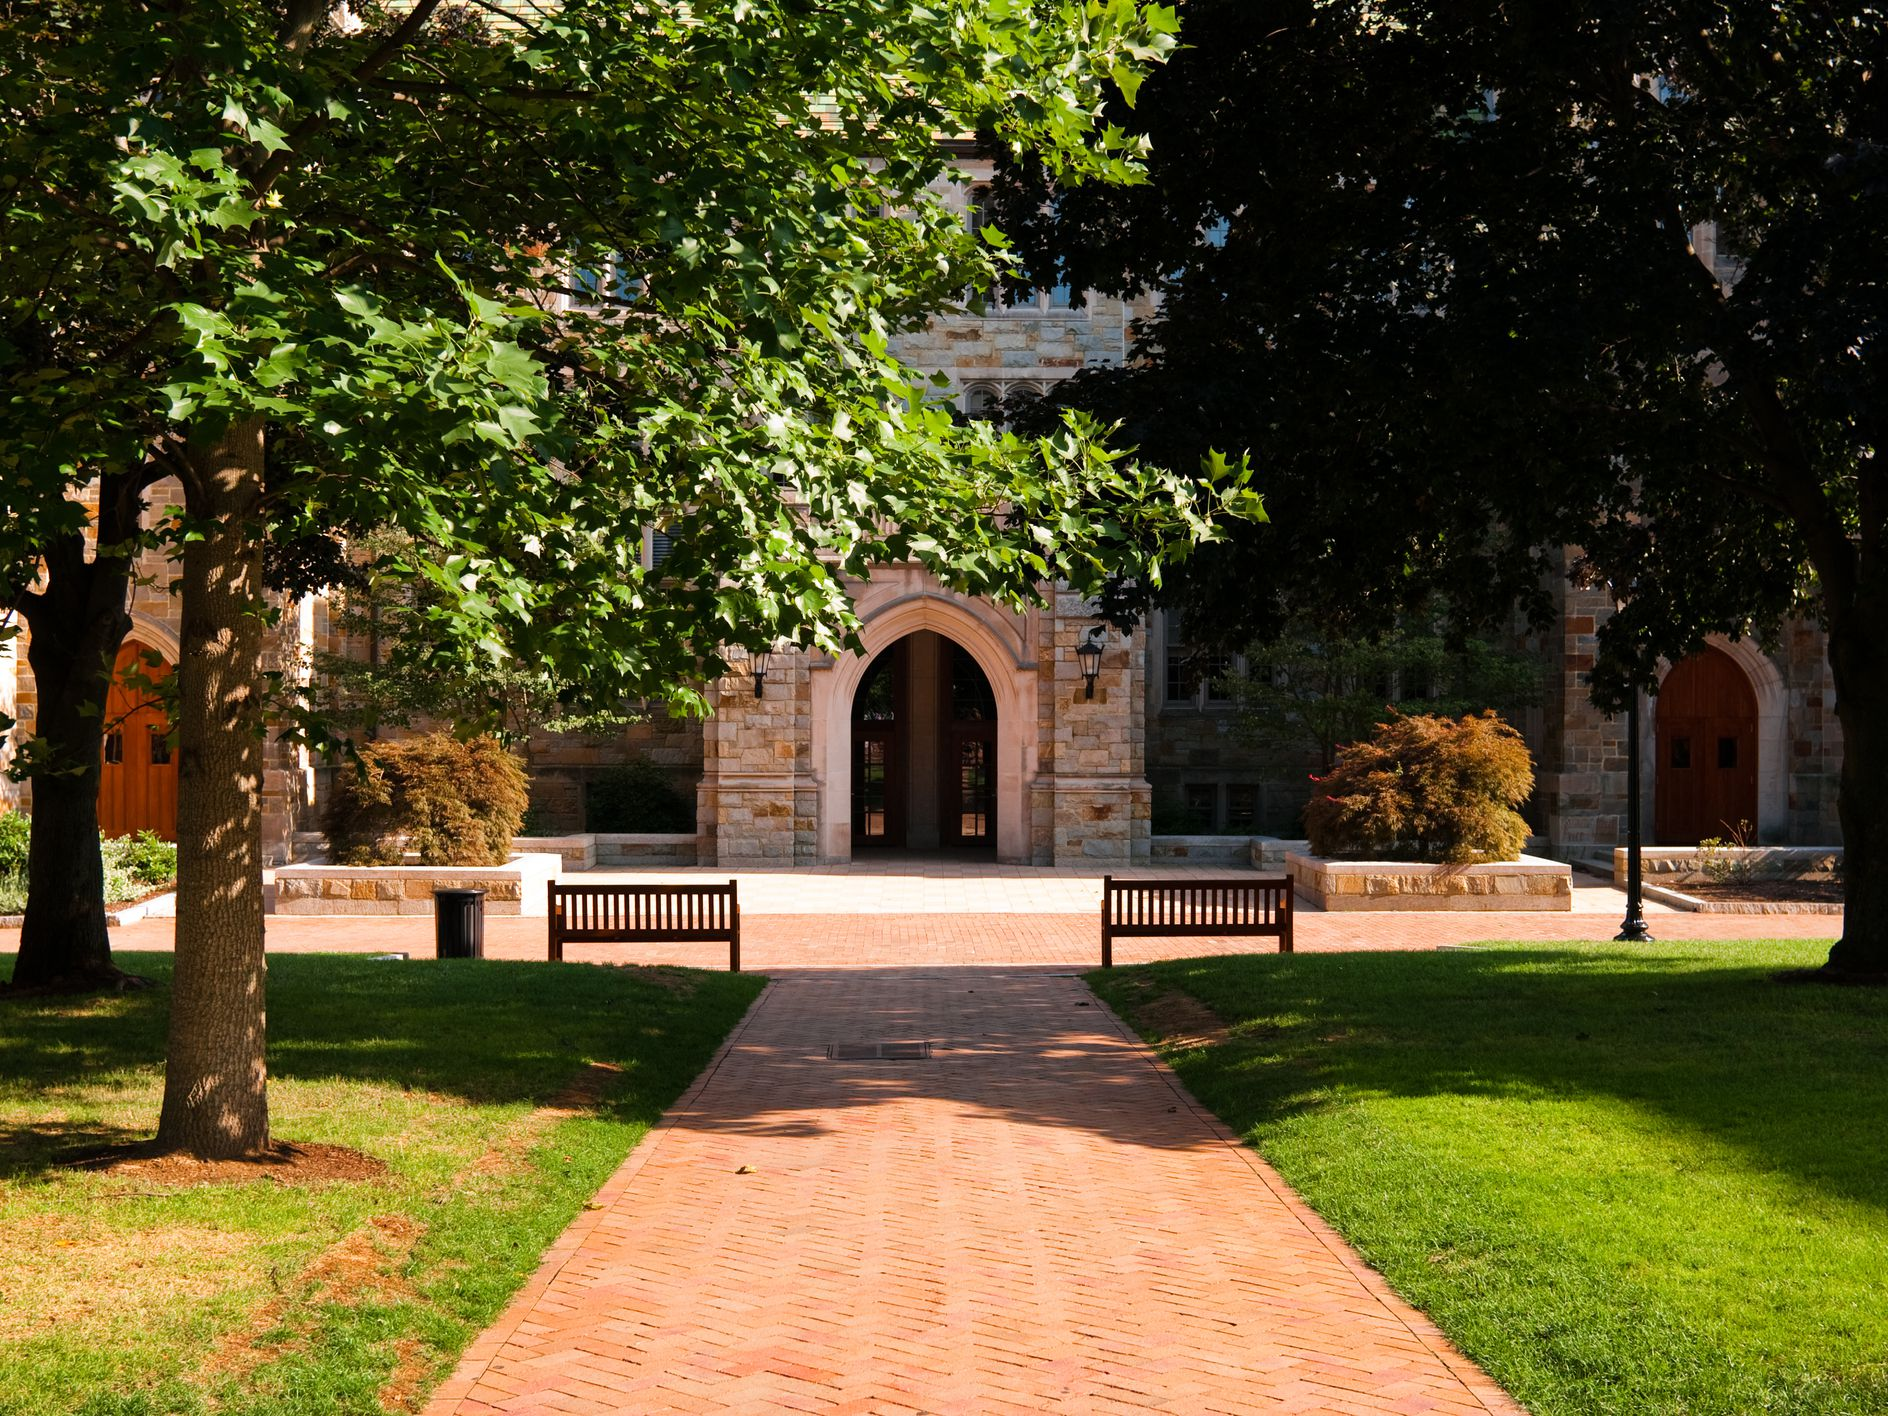 Explore Campuses From Home With These 20 Virtual College Tours